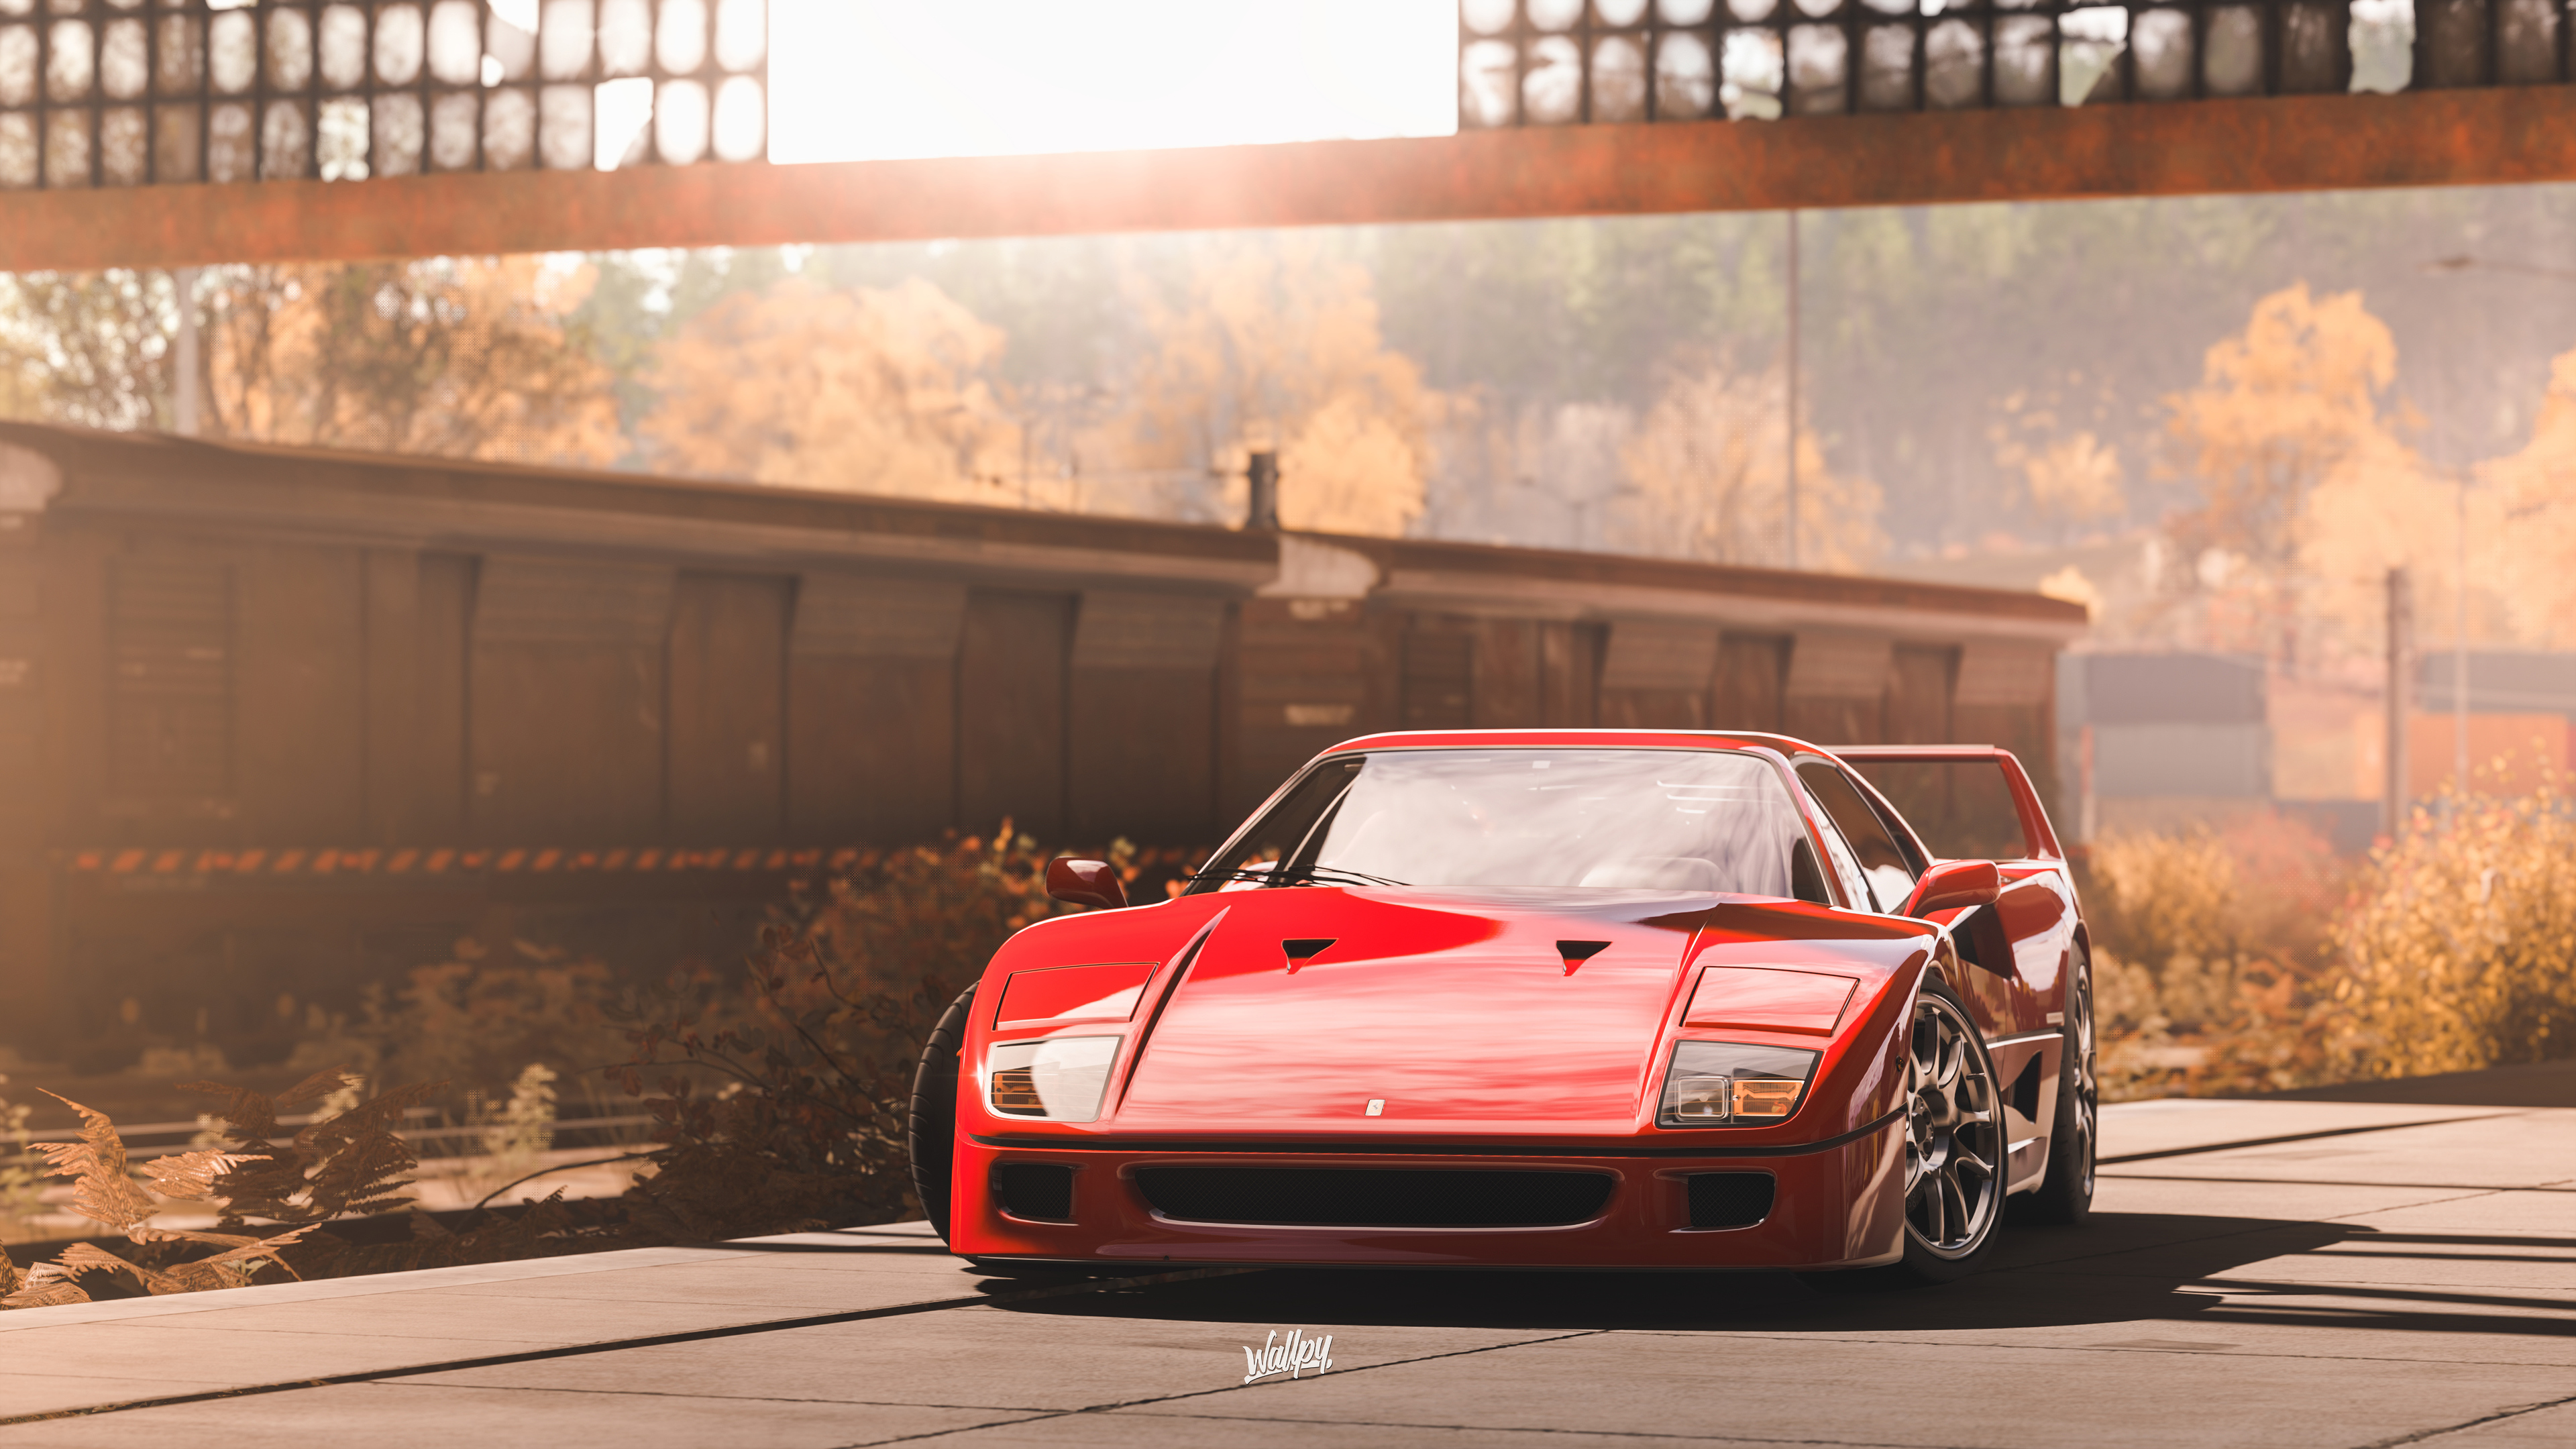 forza horizon 4 ferrari 1568057365 - Forza Horizon 4 Ferrari - hd-wallpapers, games wallpapers, forza wallpapers, forza horizon 4 wallpapers, ferrari wallpapers, cars wallpapers, 5k wallpapers, 4k-wallpapers